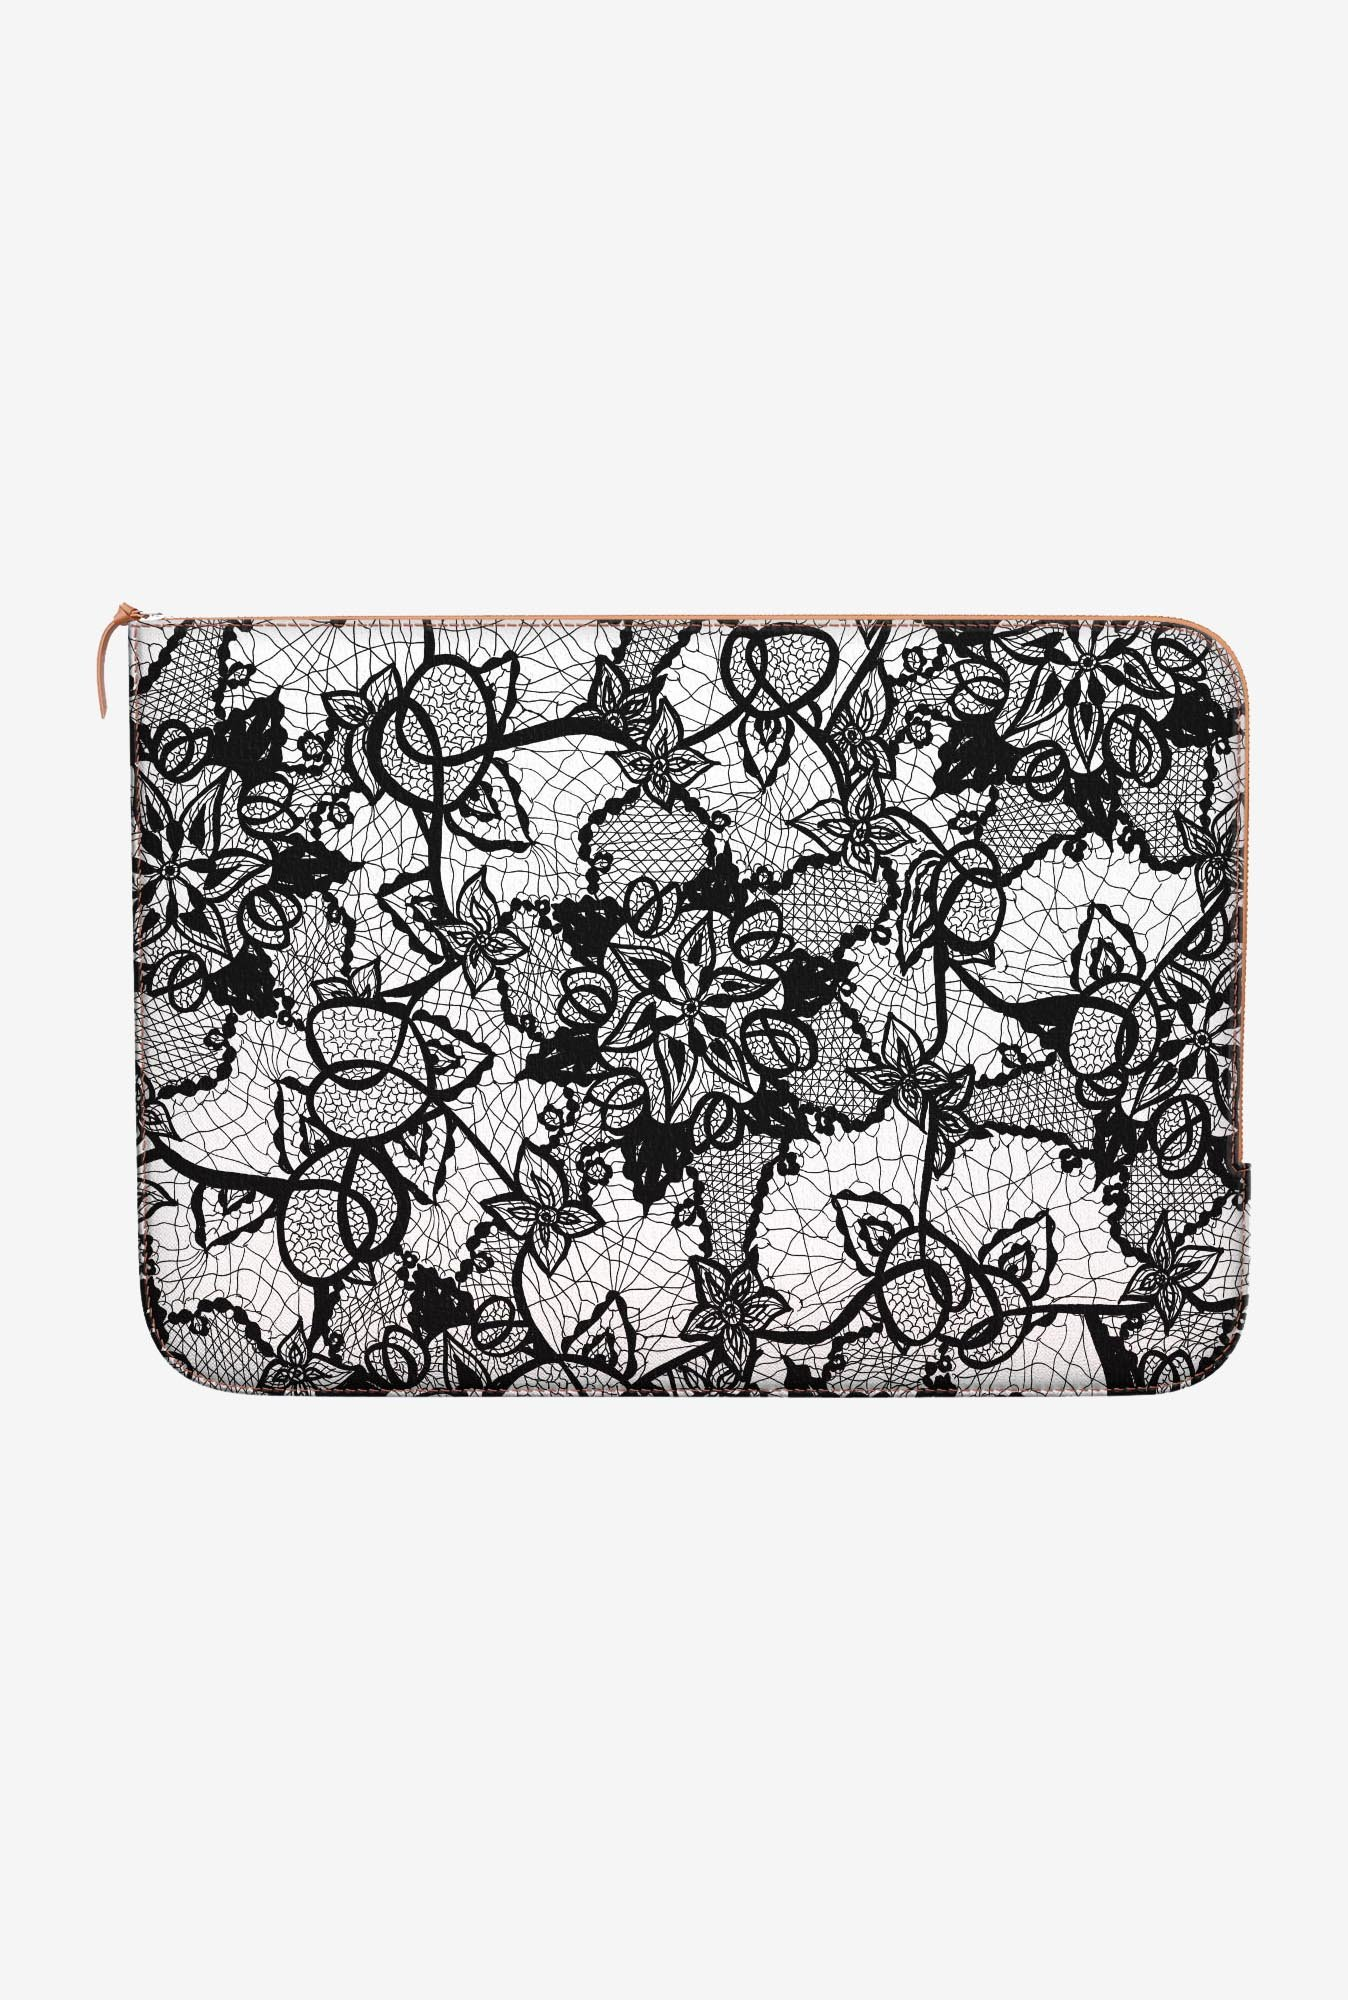 DailyObjects Lace Pattern MacBook Pro 15 Zippered Sleeve